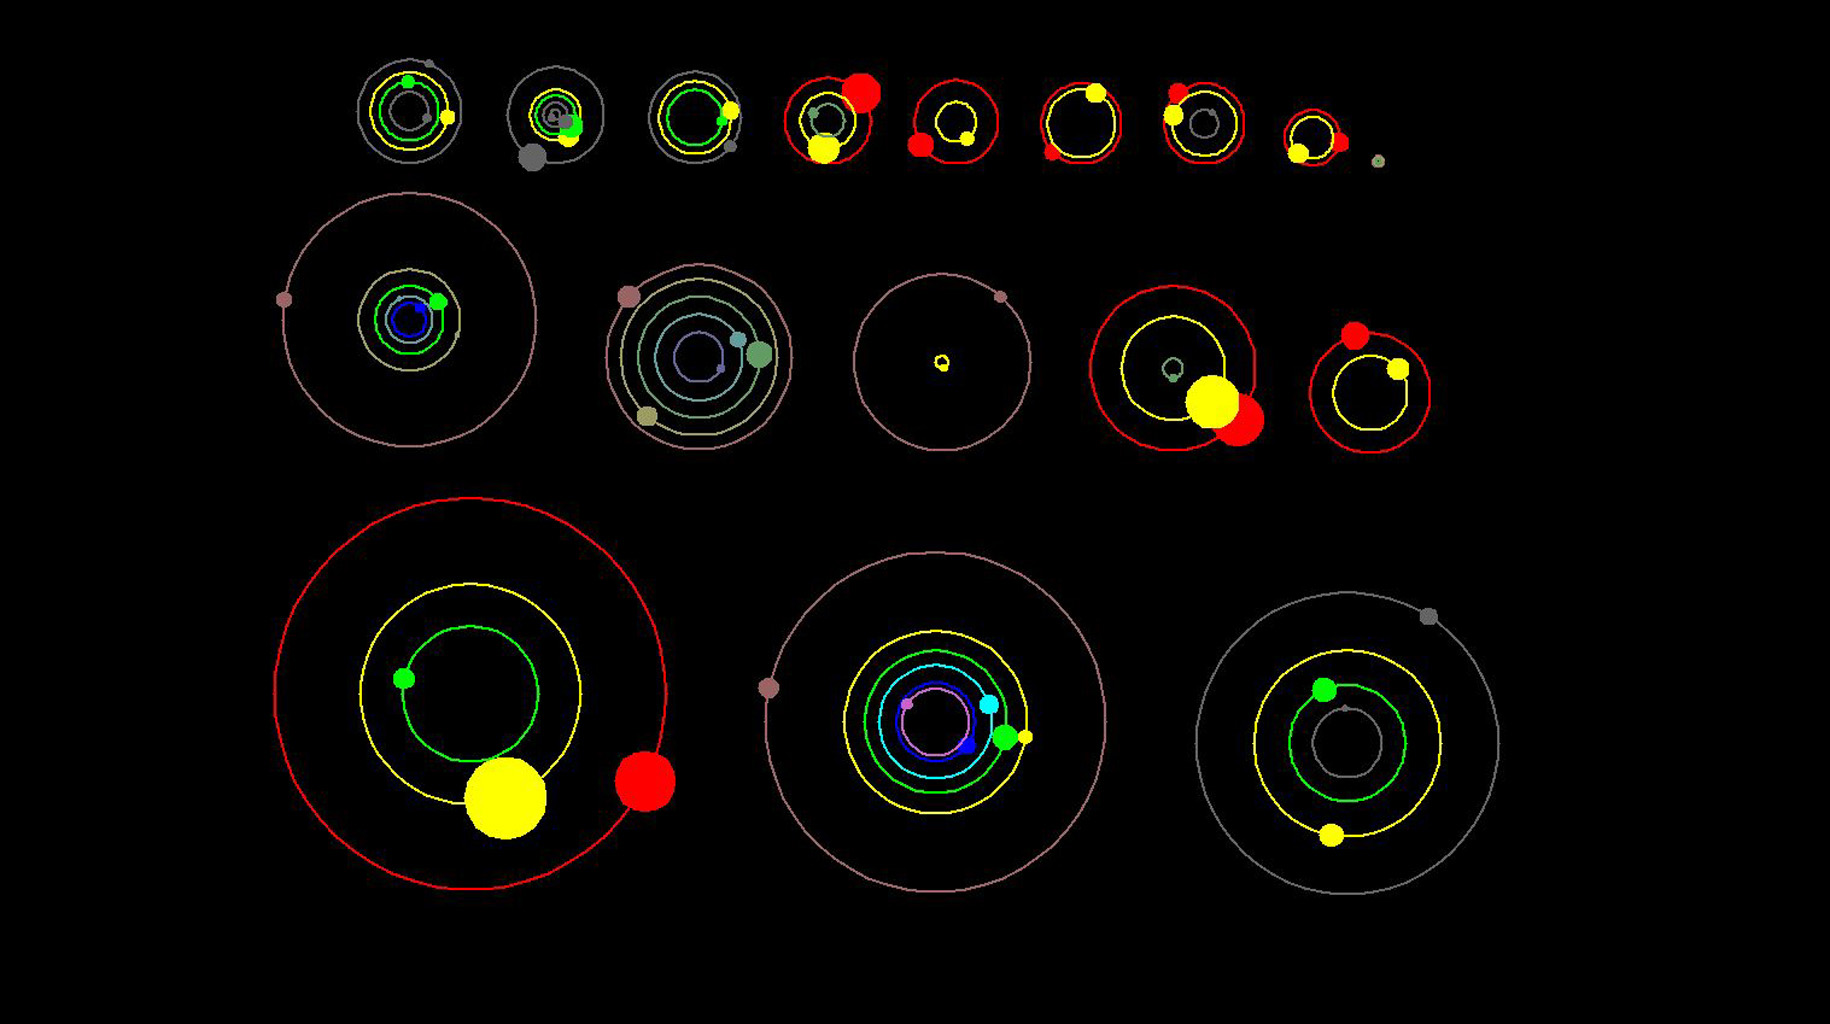 This artist's concept shows an overhead view of the orbital position of the planets in systems with multiple transiting planets discovered by NASA's Kepler mission. All the colored planets have been verified.